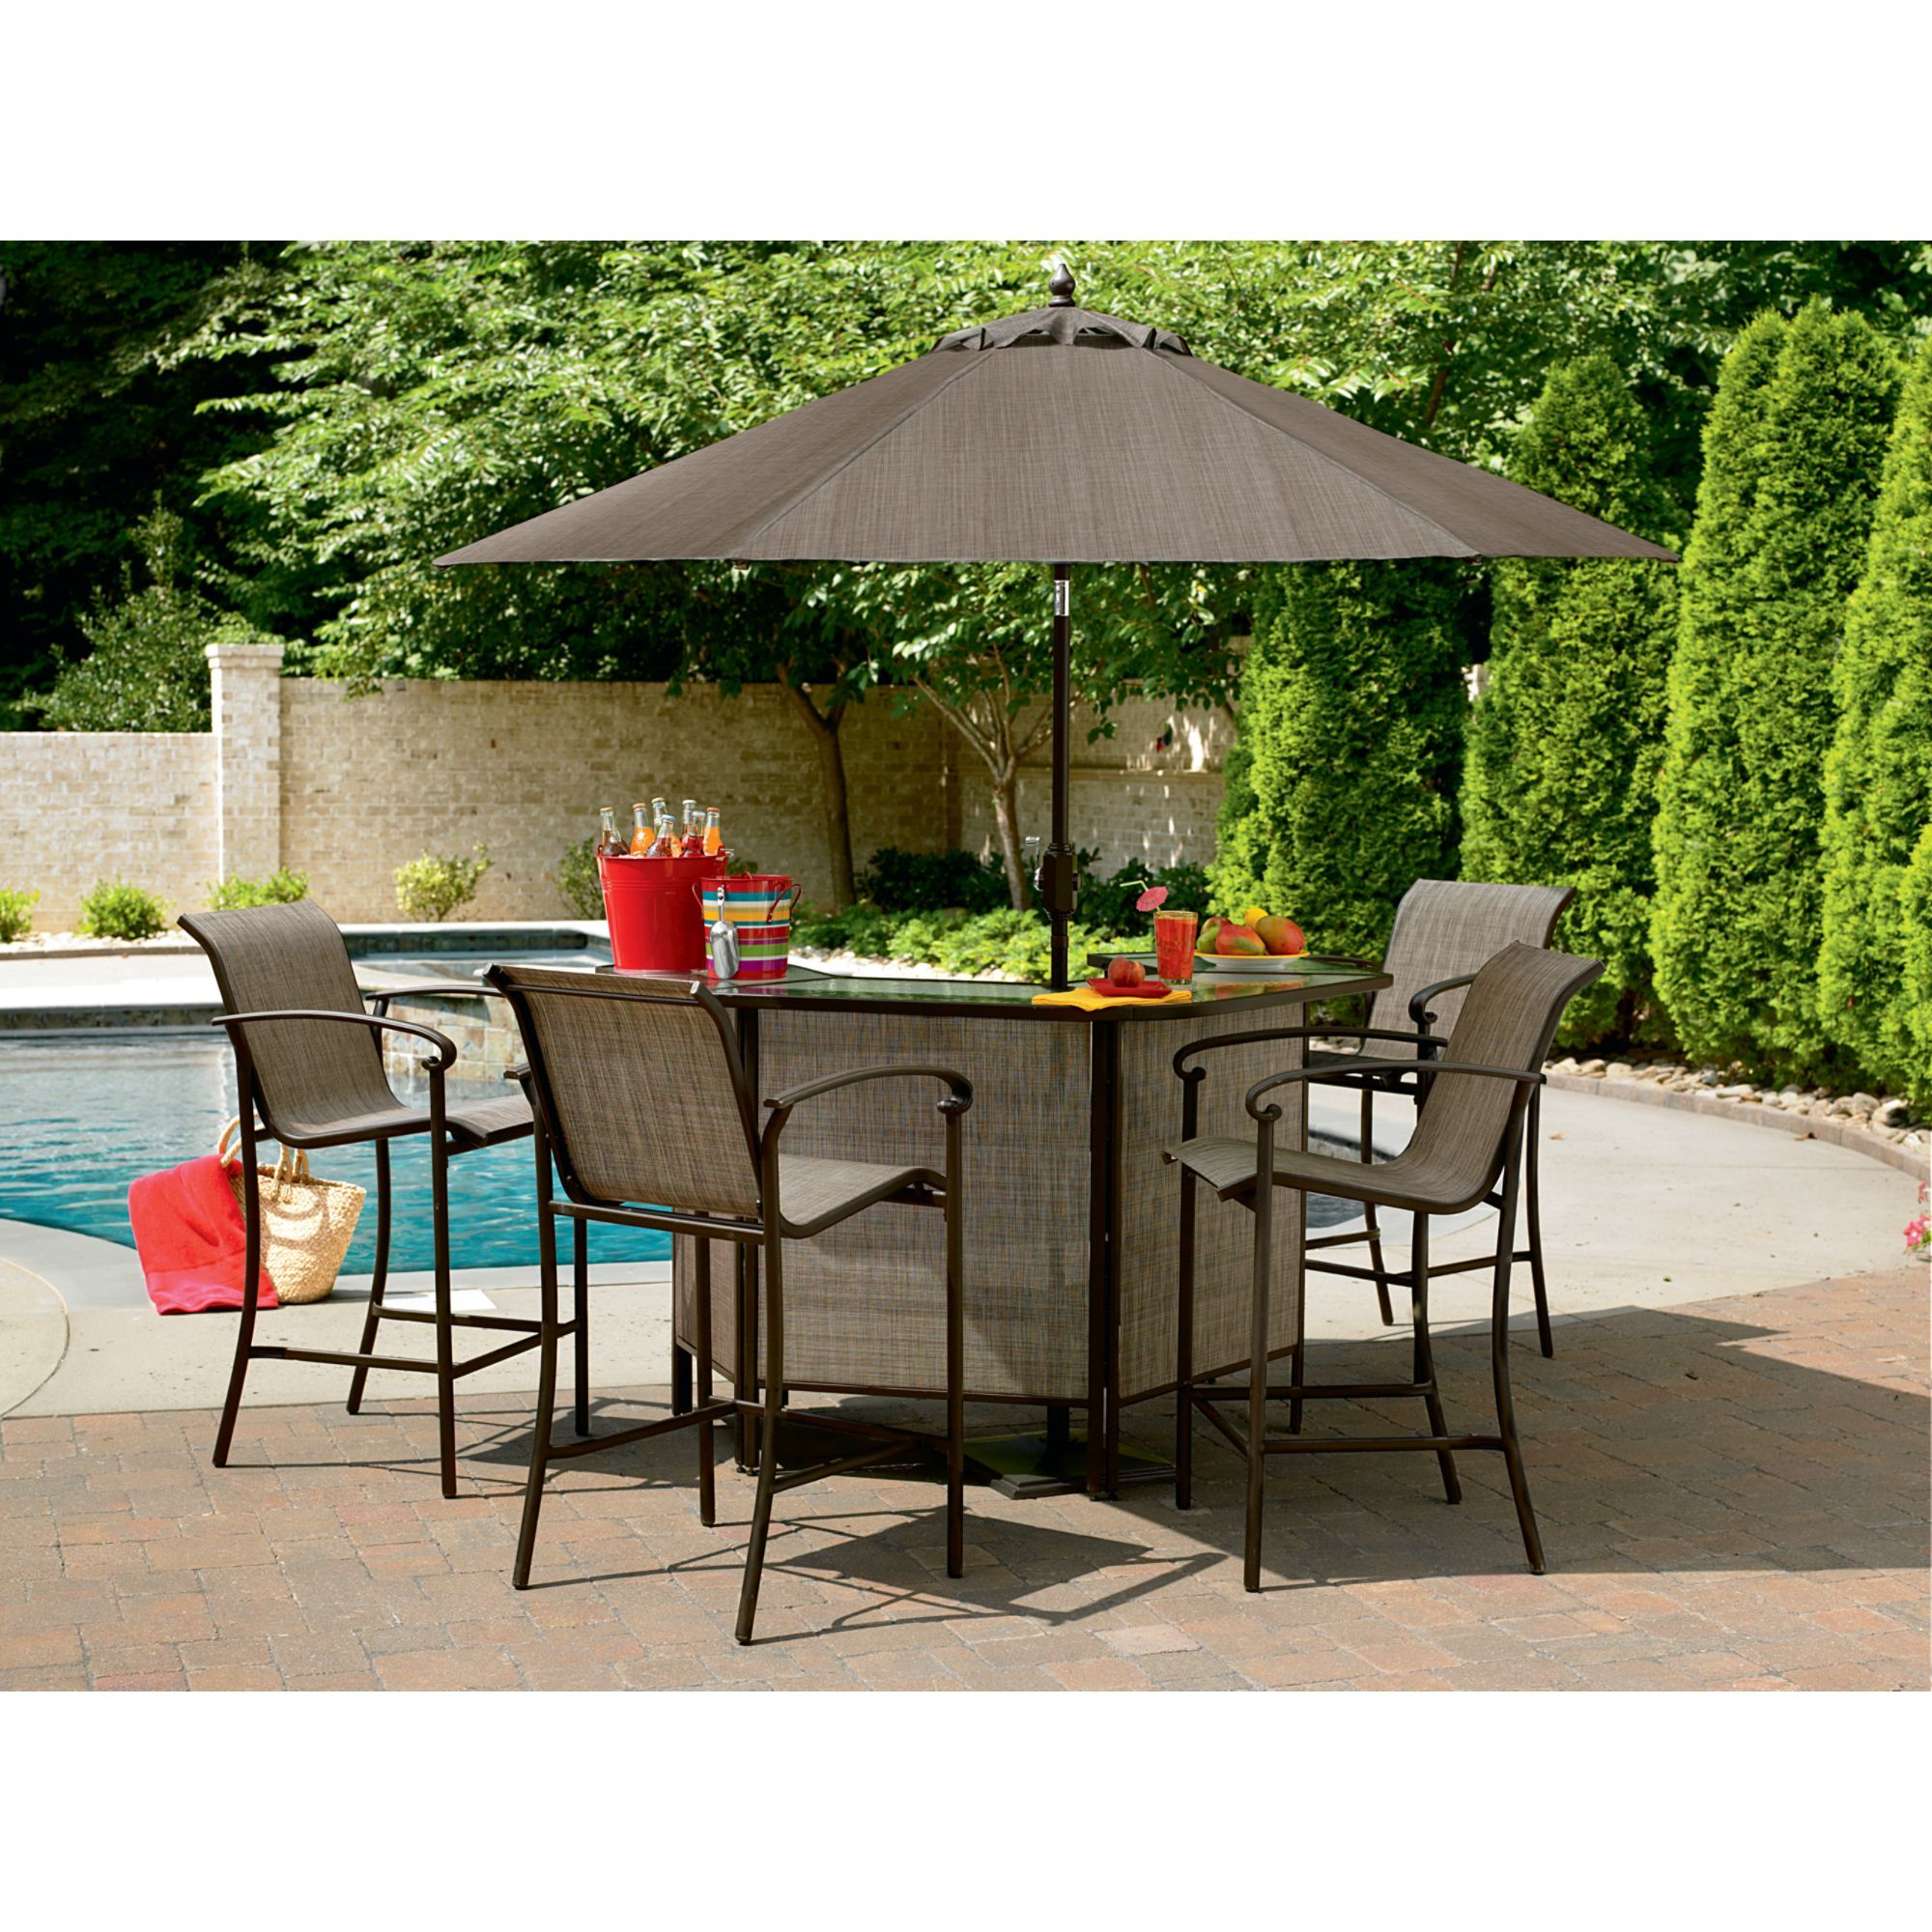 Kmart Outdoor Bar Outdoor Patio Bar Clearance Patio Furniture